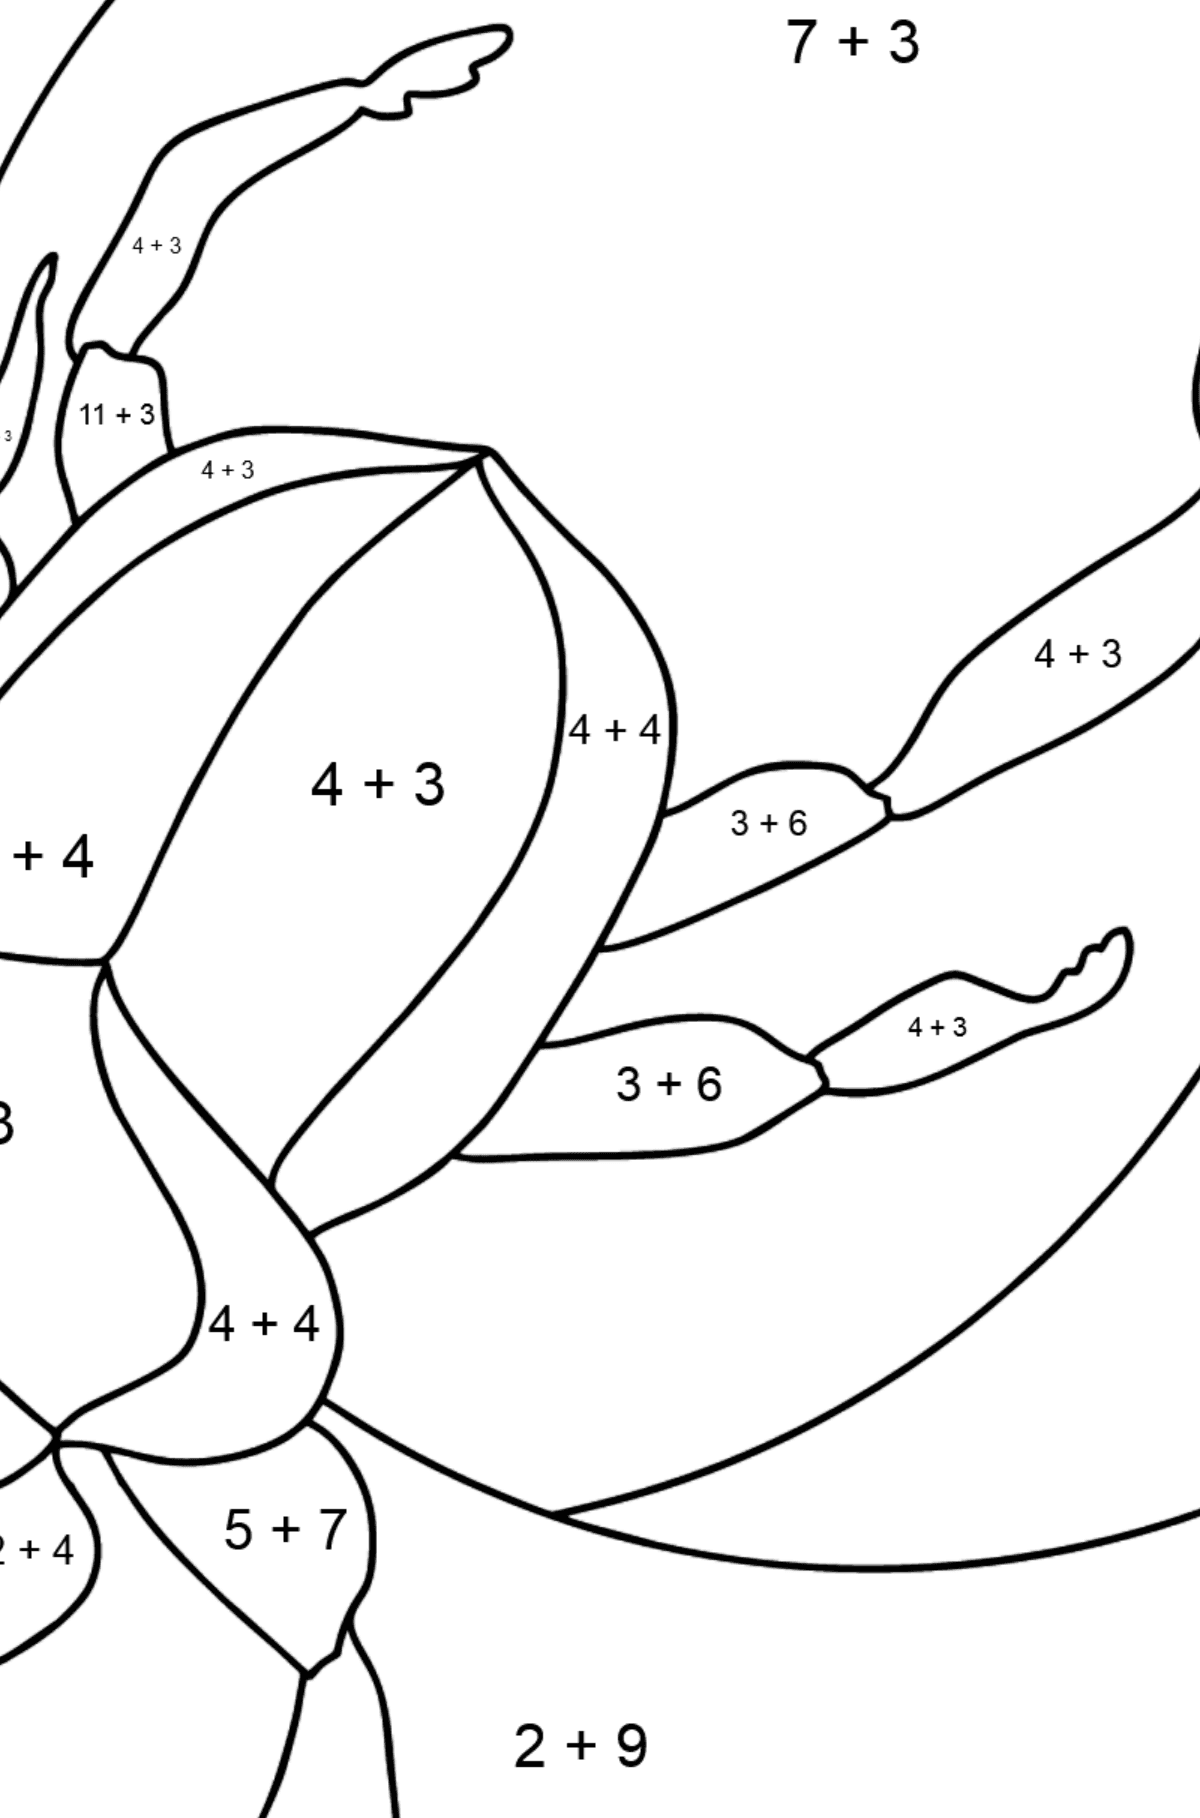 Coloring Page - A Scarab Beetle or a Symbol of Renewal - Math Coloring - Addition for Kids